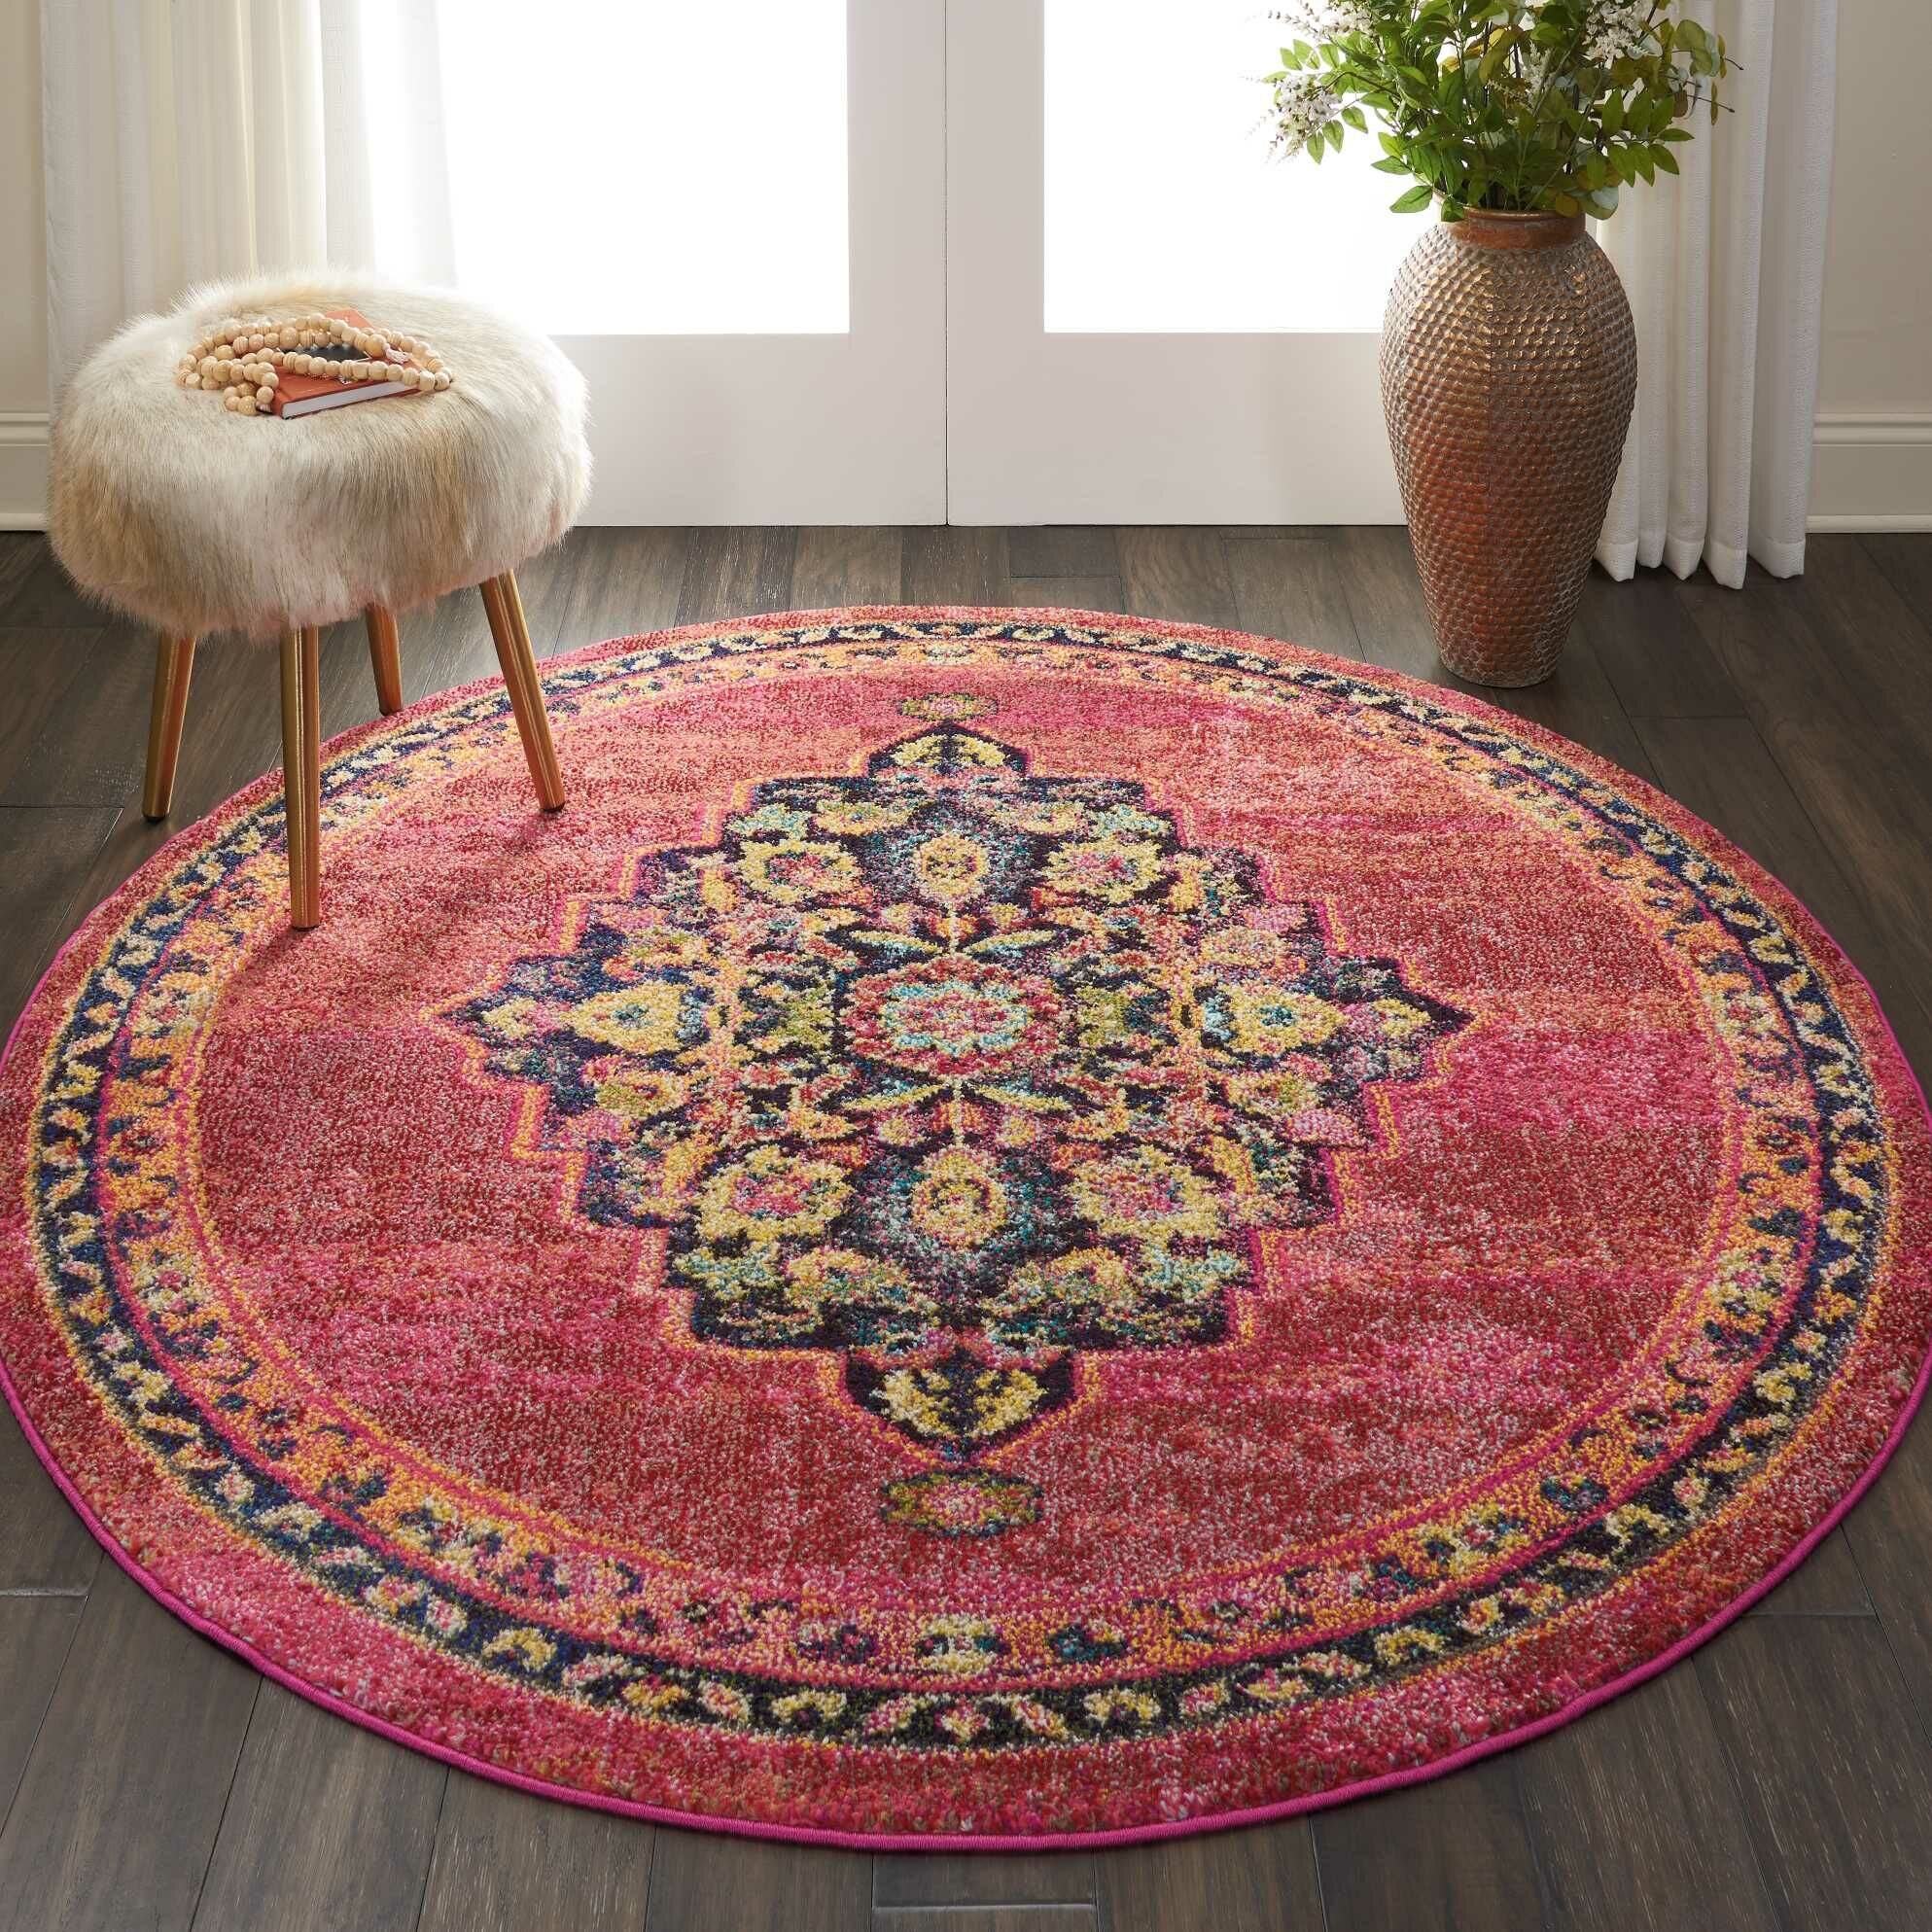 Lundy Traditional Medallion Red/Yellow Area Rug Rug Size: Round 5'3